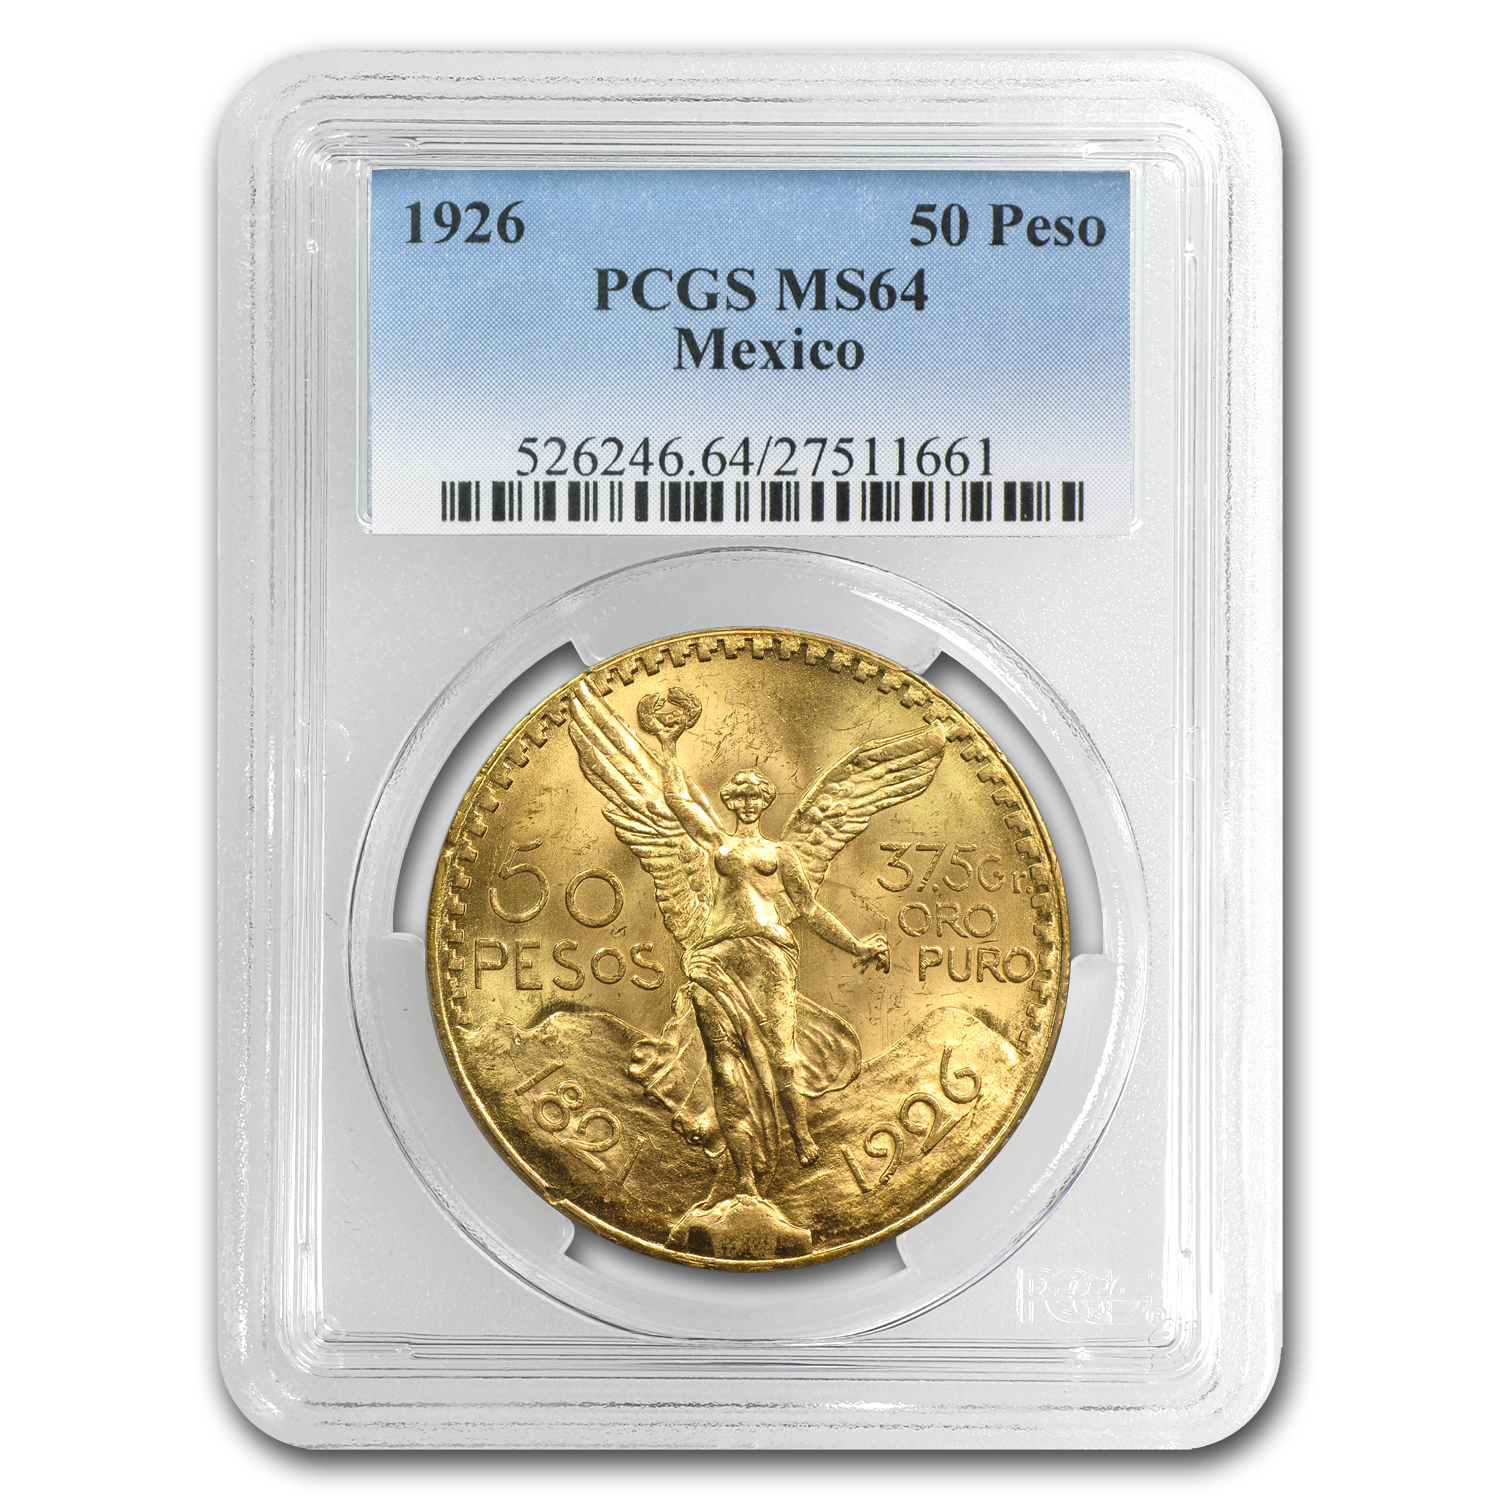 Mexico 1926 50 Pesos Gold MS-64 PCGS